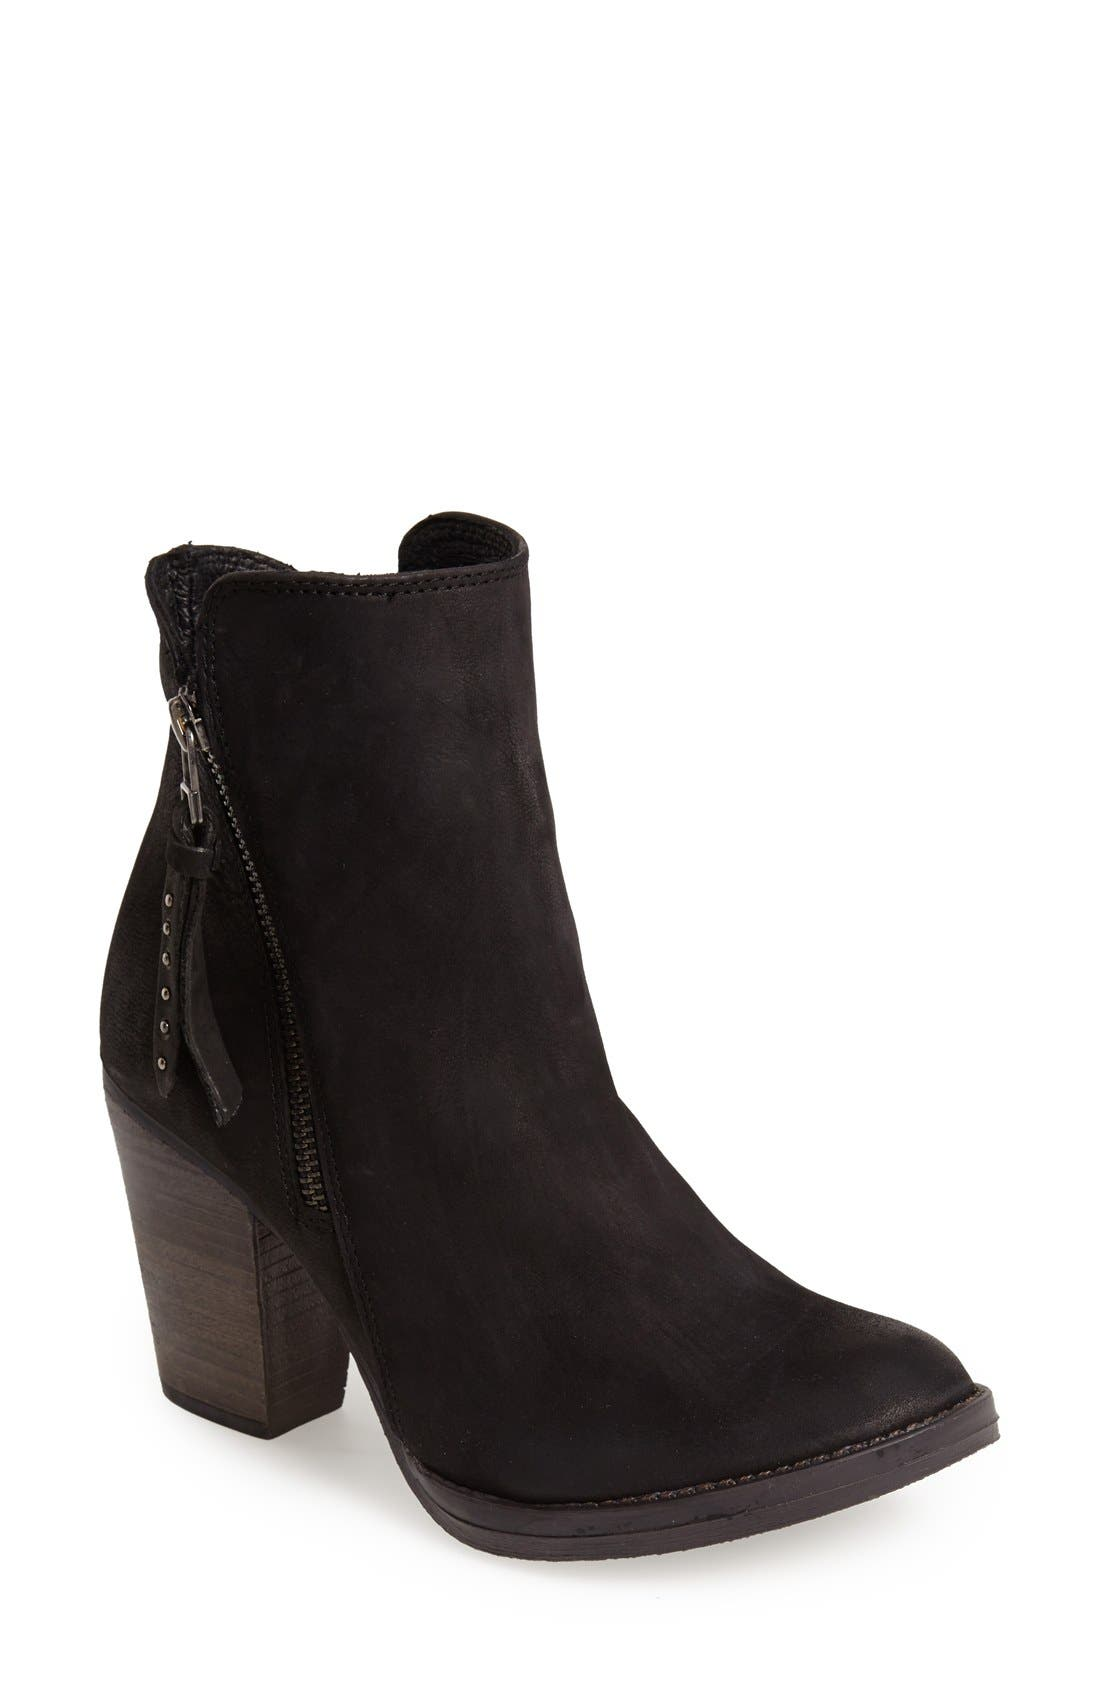 'Ryat' Leather Ankle Bootie,                         Main,                         color, 001